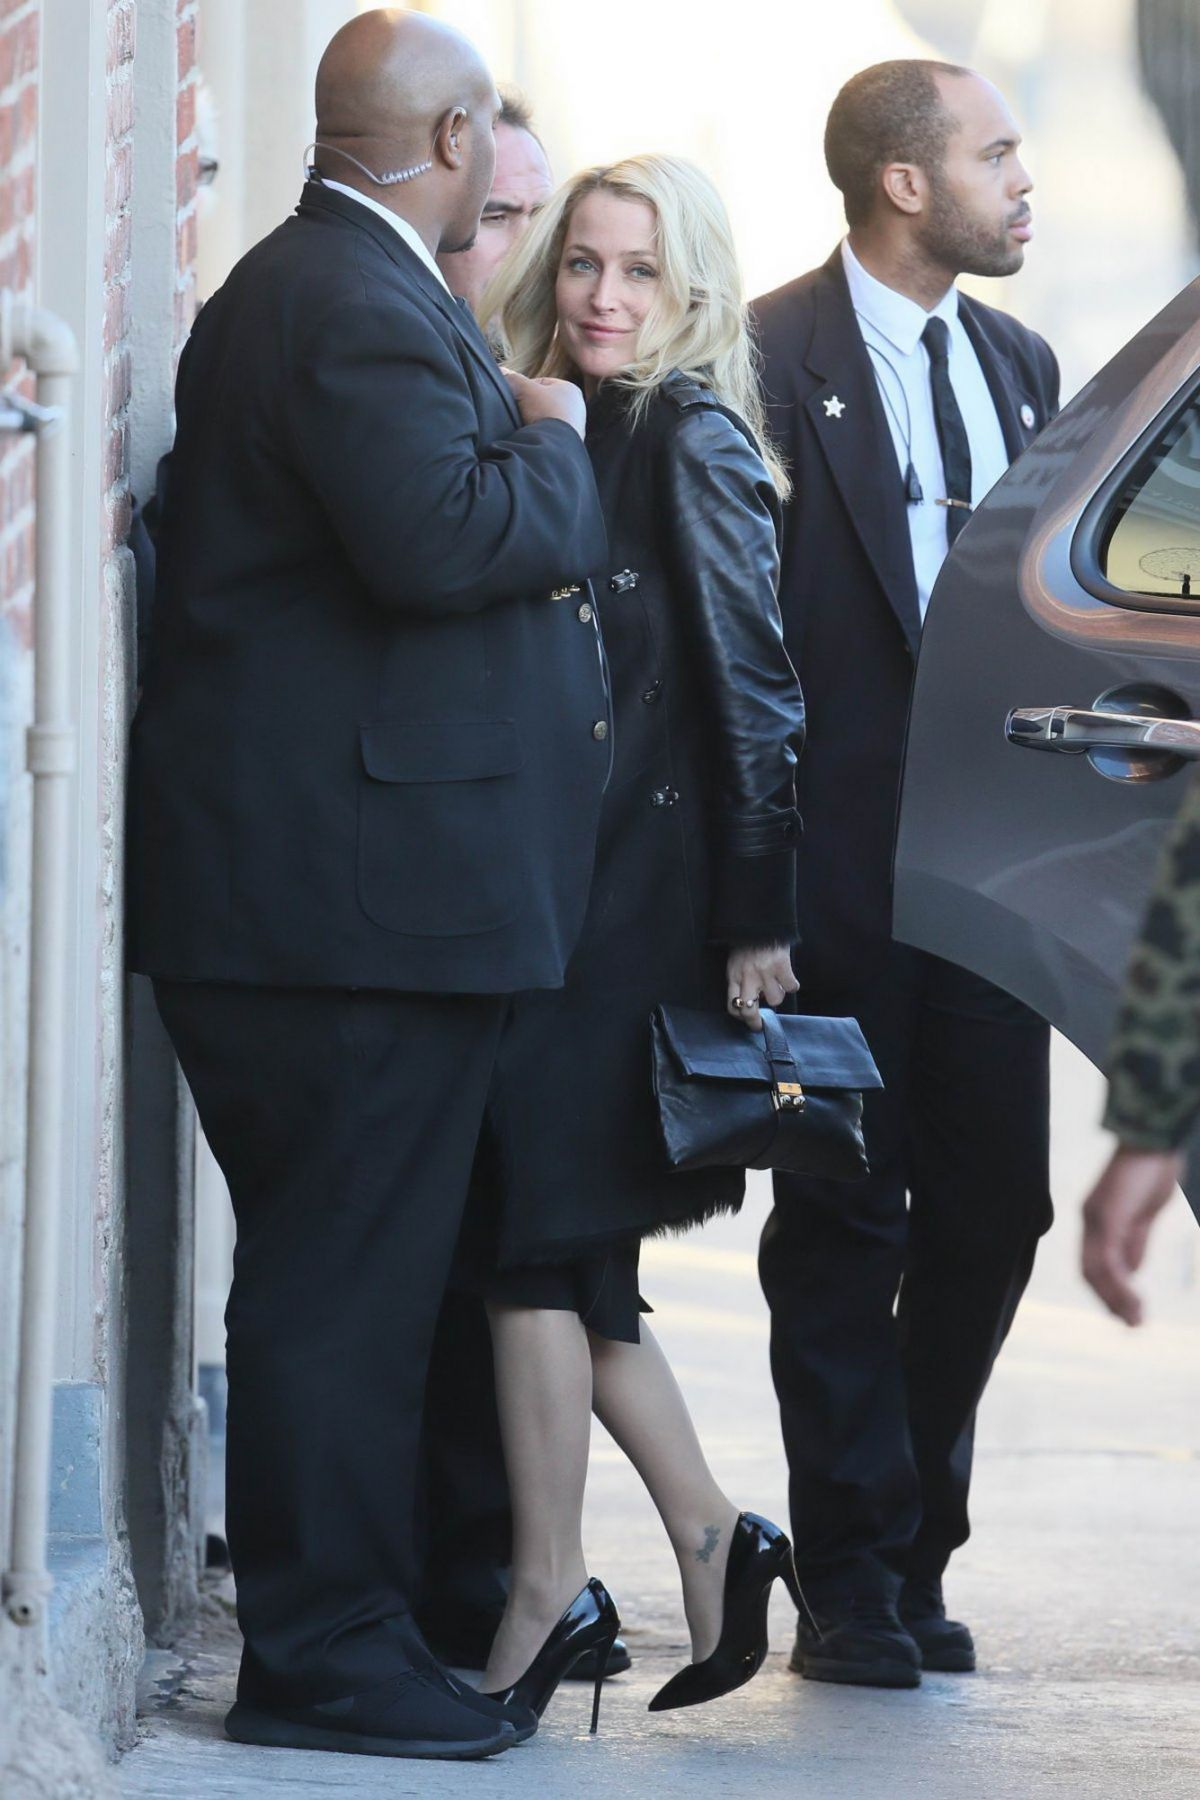 Gillian Anderson Arriving At Jimmy Kimmel Live In NYC